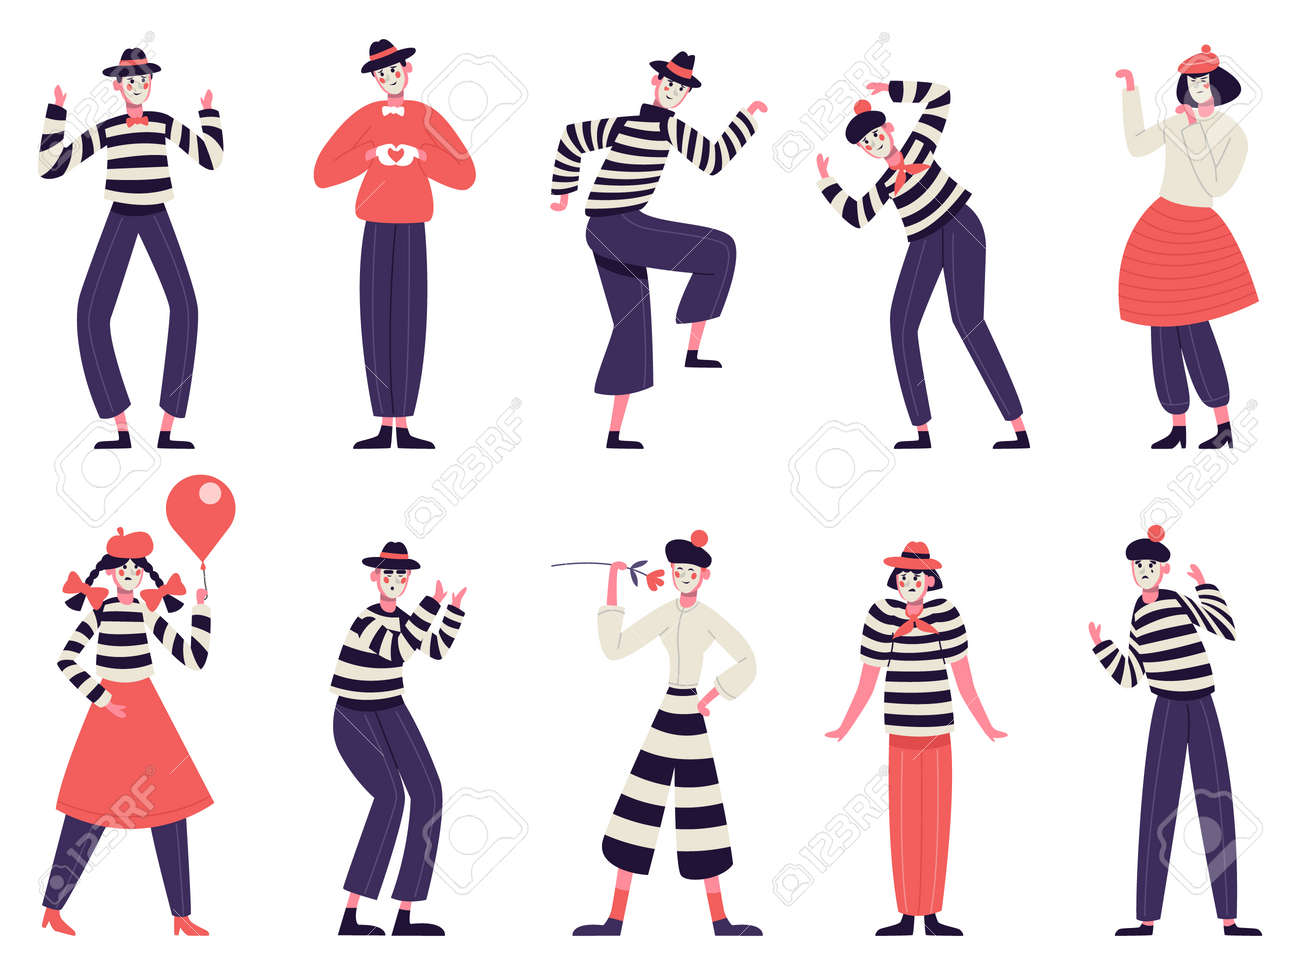 Mimes characters. Silent actors, pantomime and comedy performing, funny mimic poses. Male and female mimes characters vector illustration set - 165882050